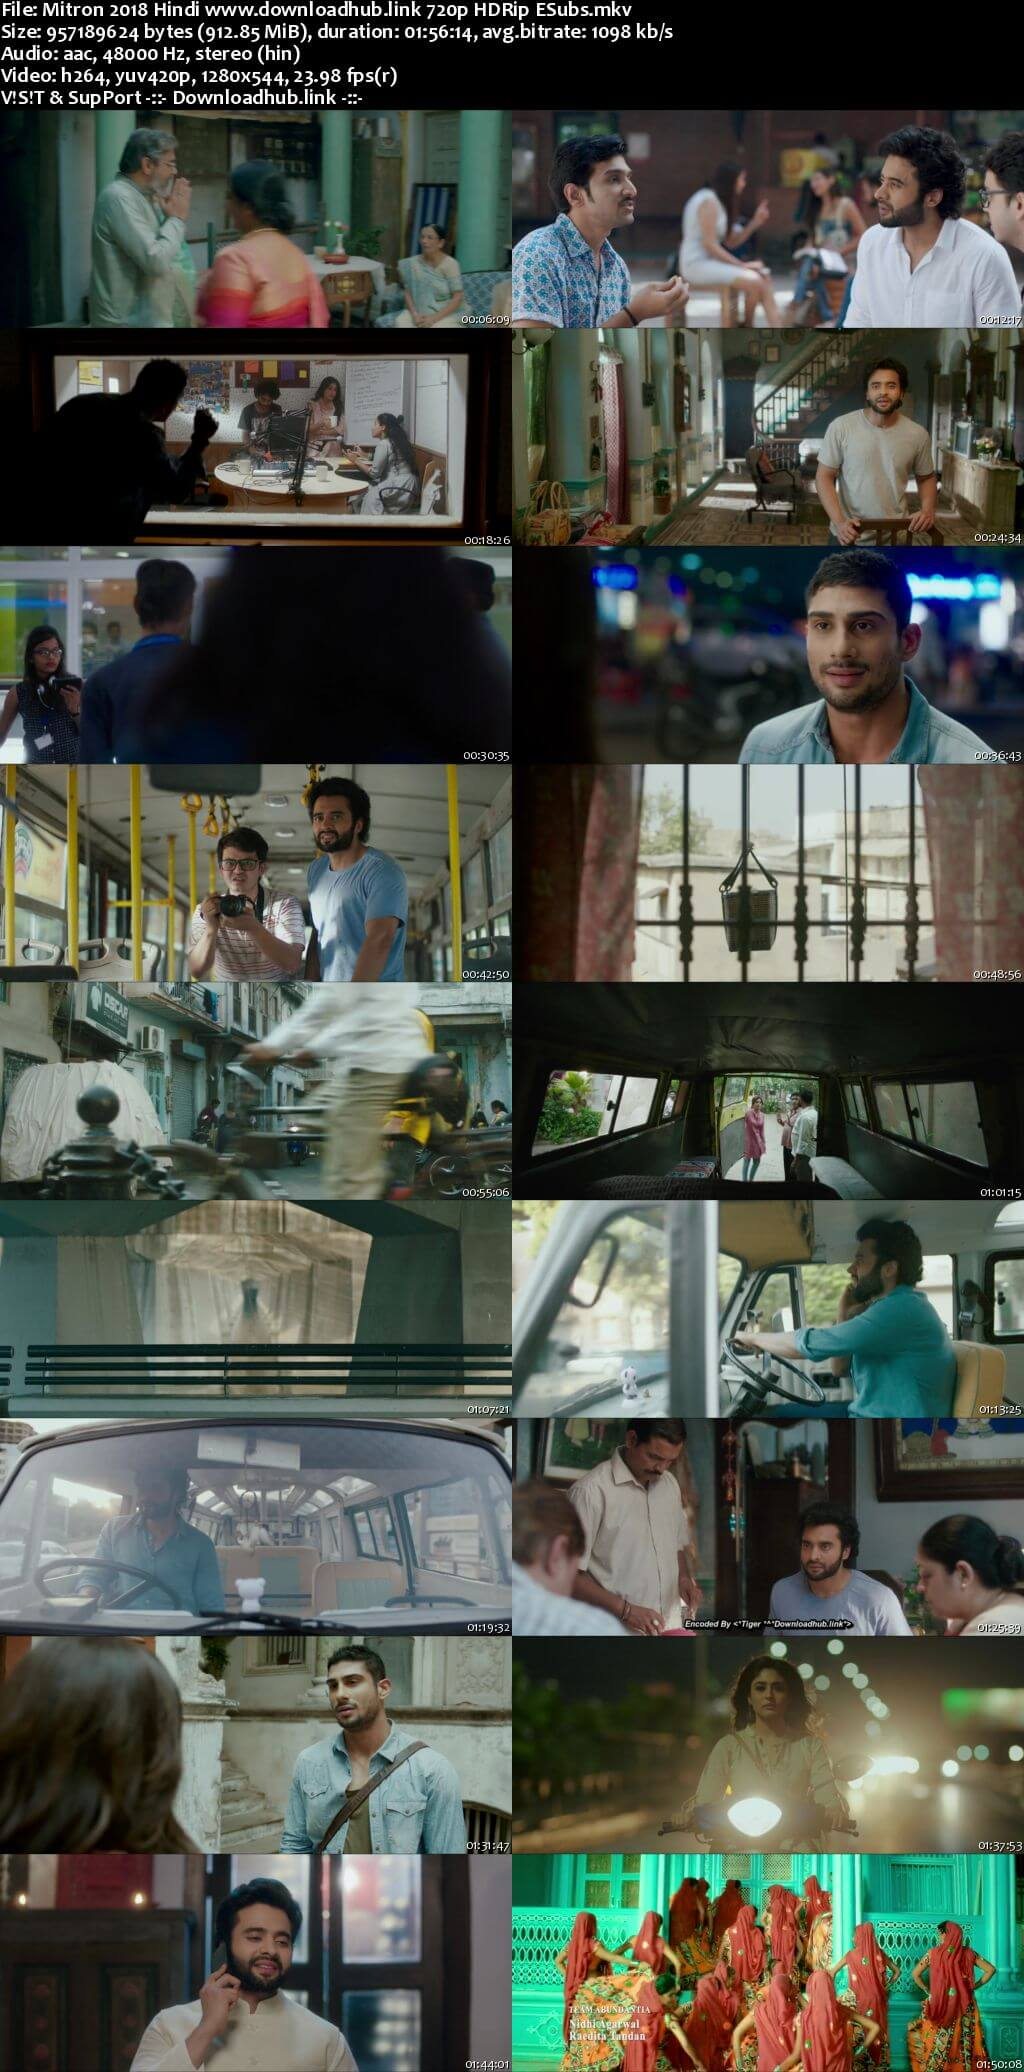 Mitron 2018 Hindi 720p HDRip ESubs